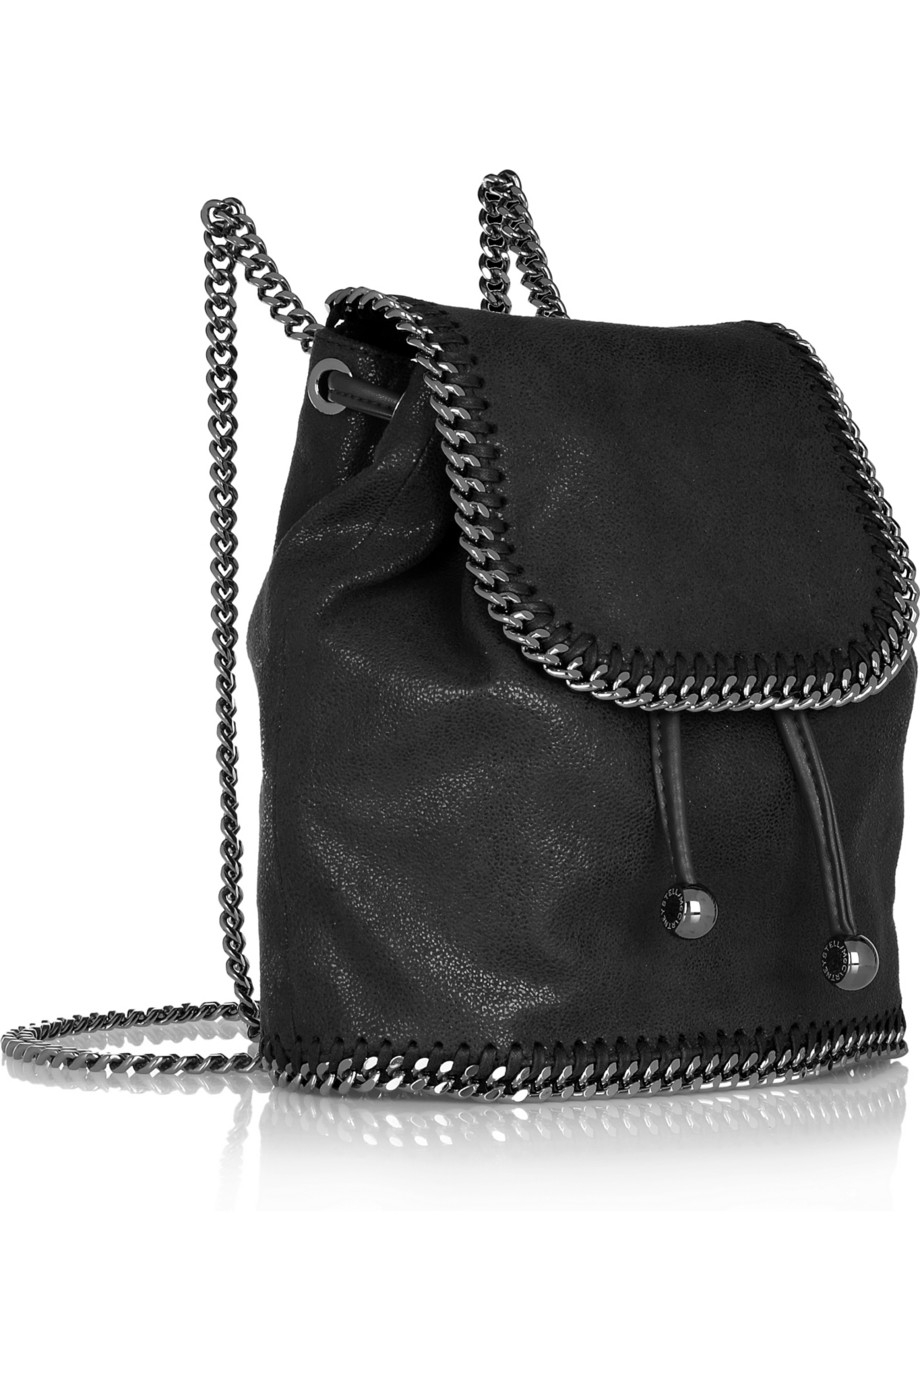 205bb368e7f Gallery. Previously sold at  NET-A-PORTER · Women s Mini Backpack Women s Stella  Mccartney Falabella ...